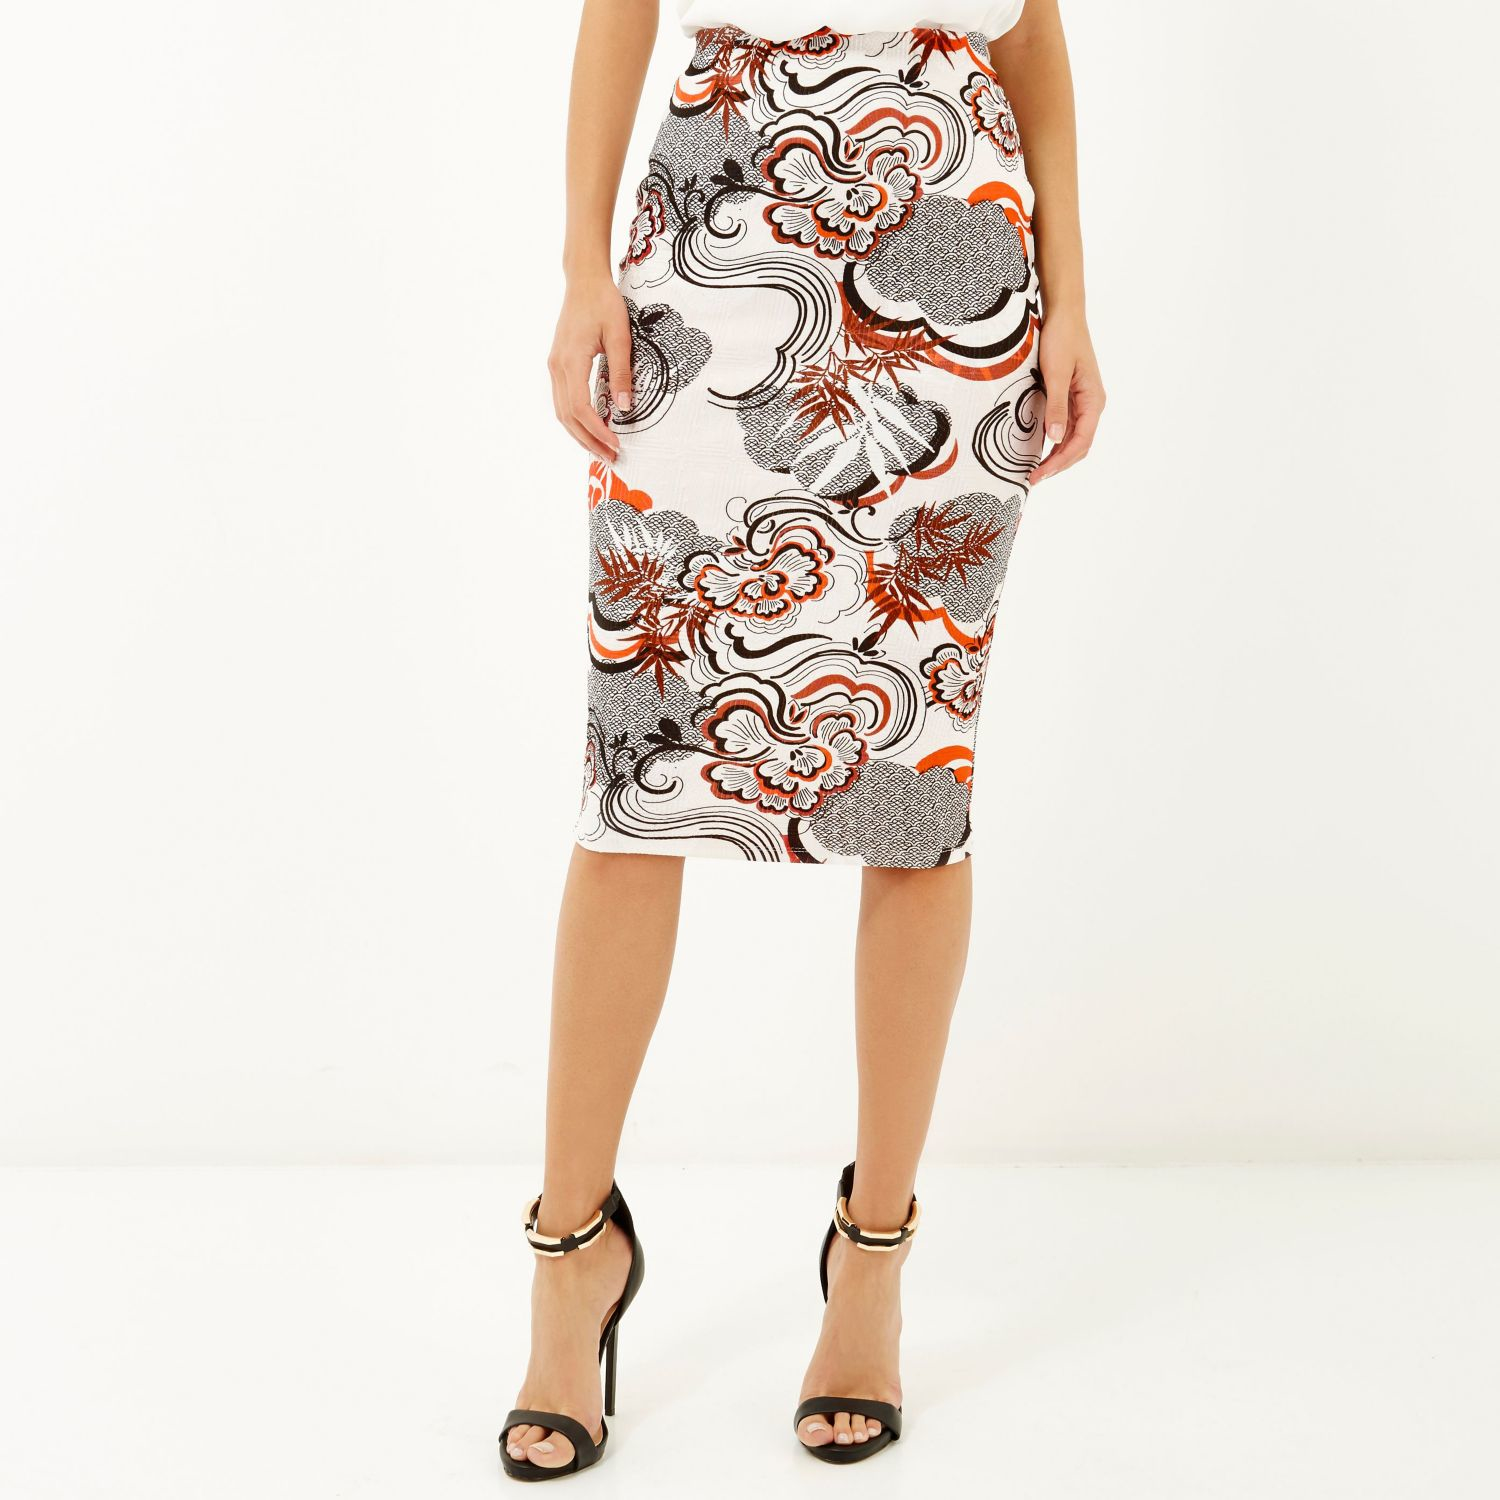 River island Orange Floral Print Pencil Skirt in Orange | Lyst